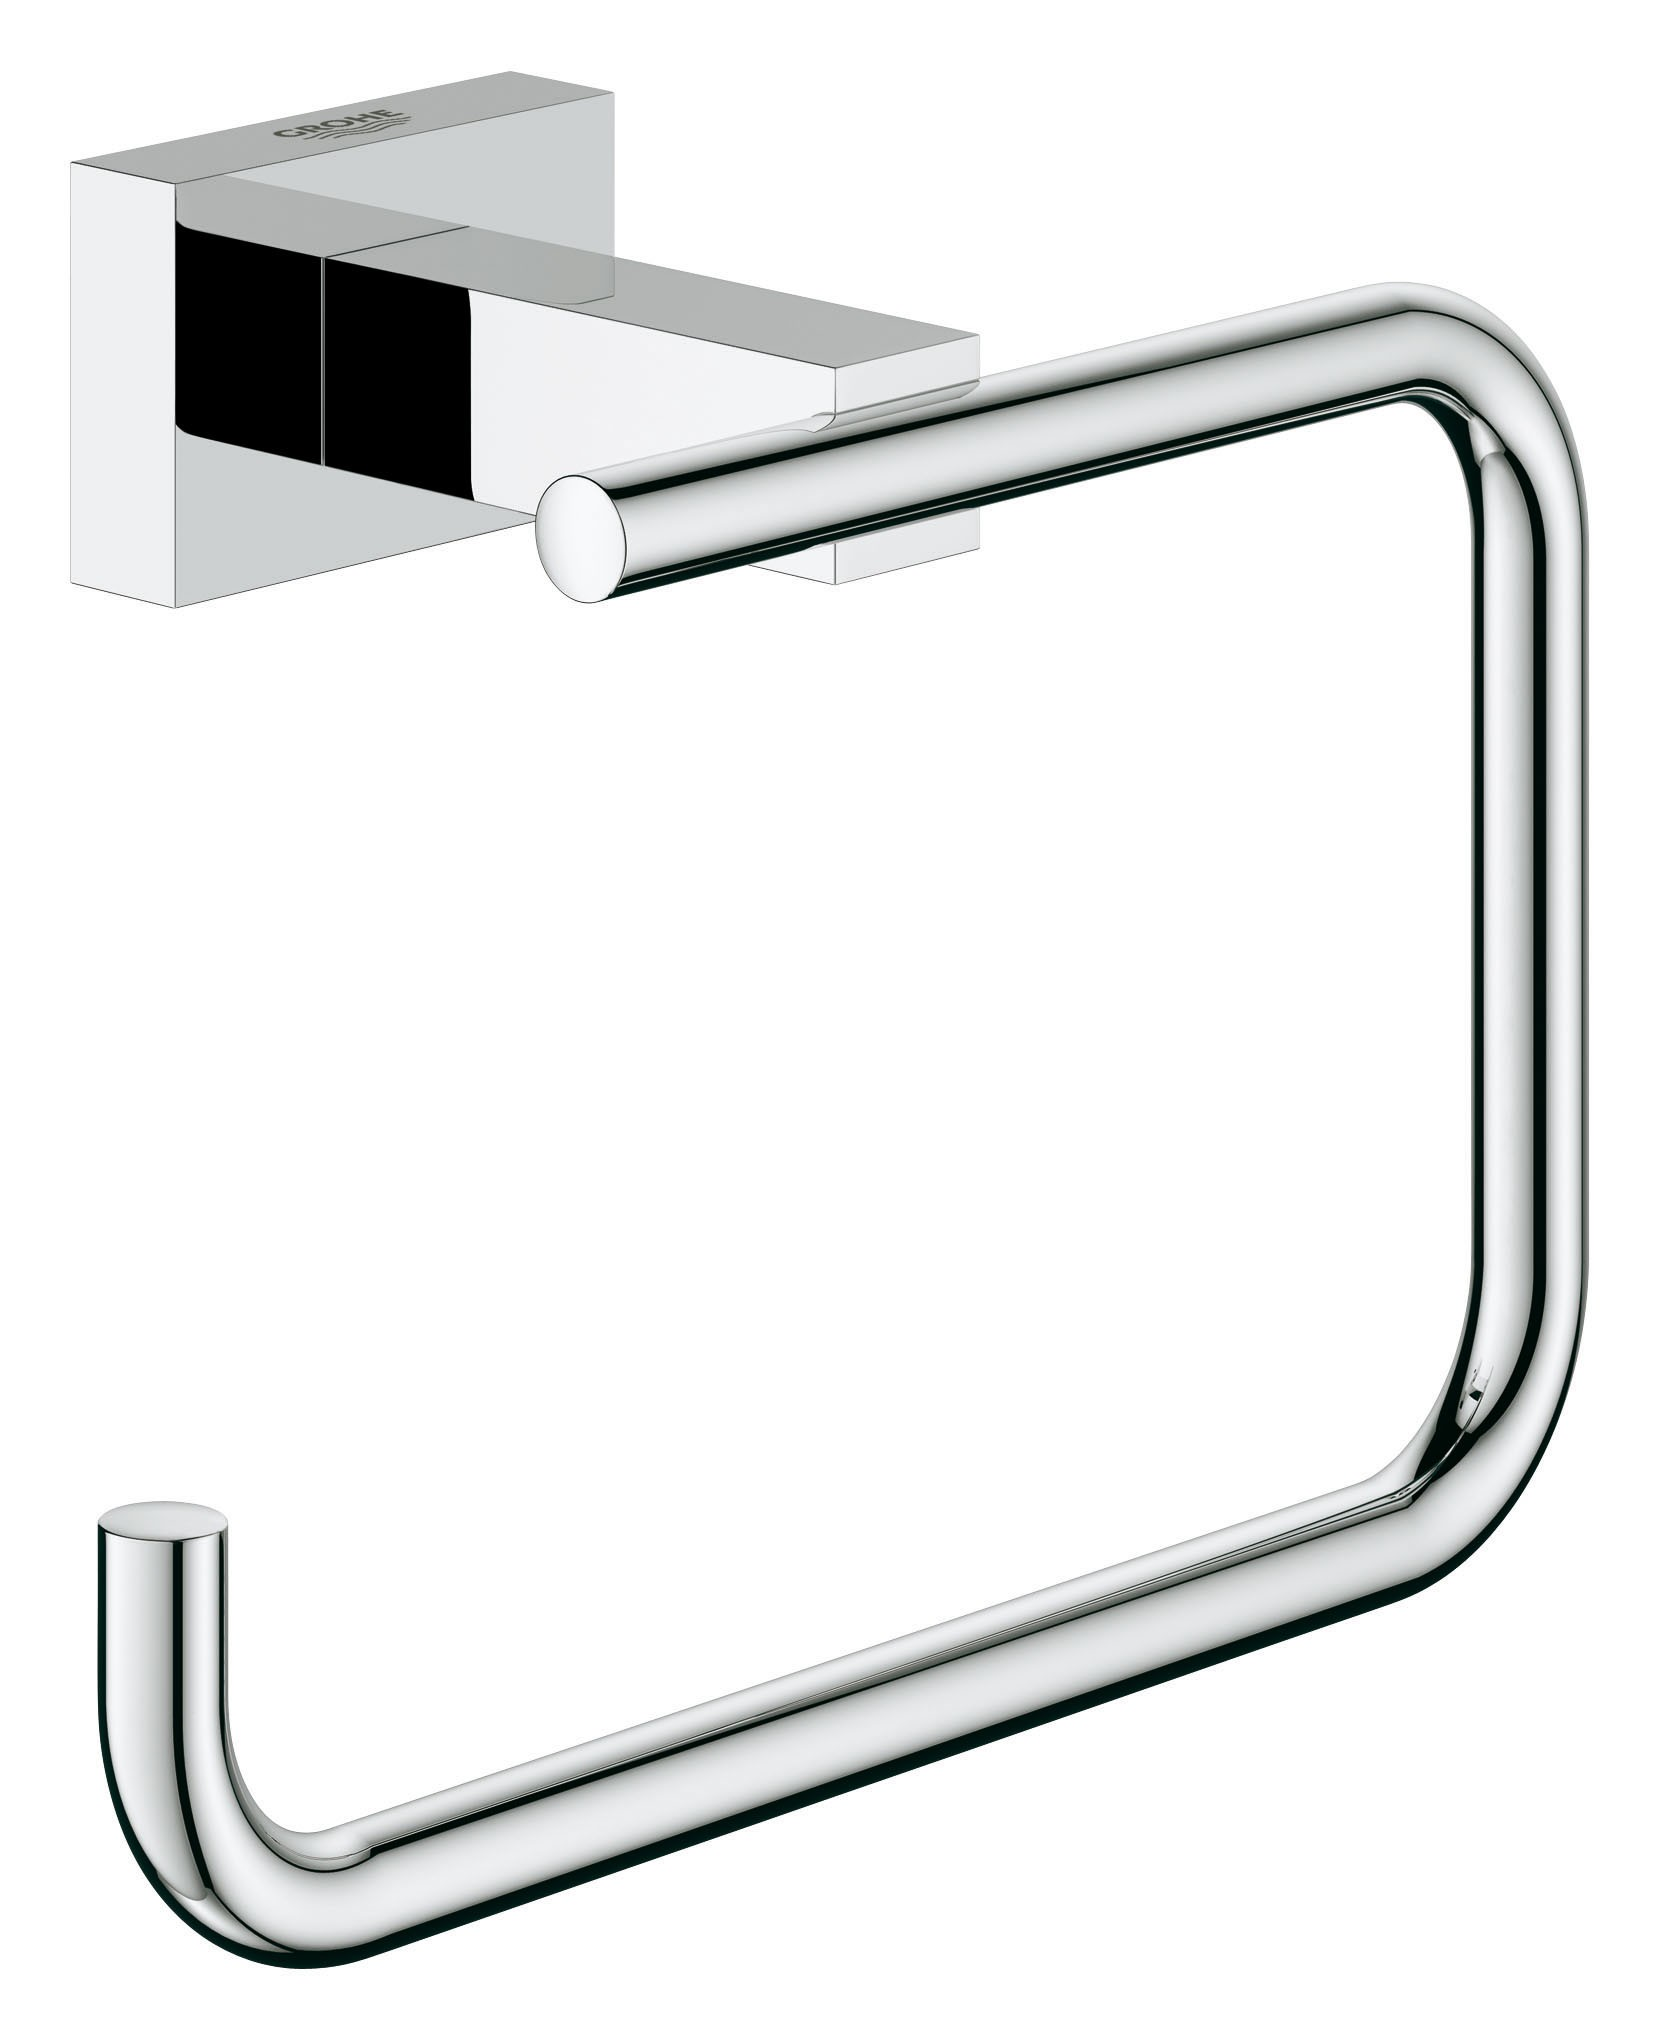 ��������� ��� ��������� ������ Grohe 40507000 Essentials Cube ��� ������, ����